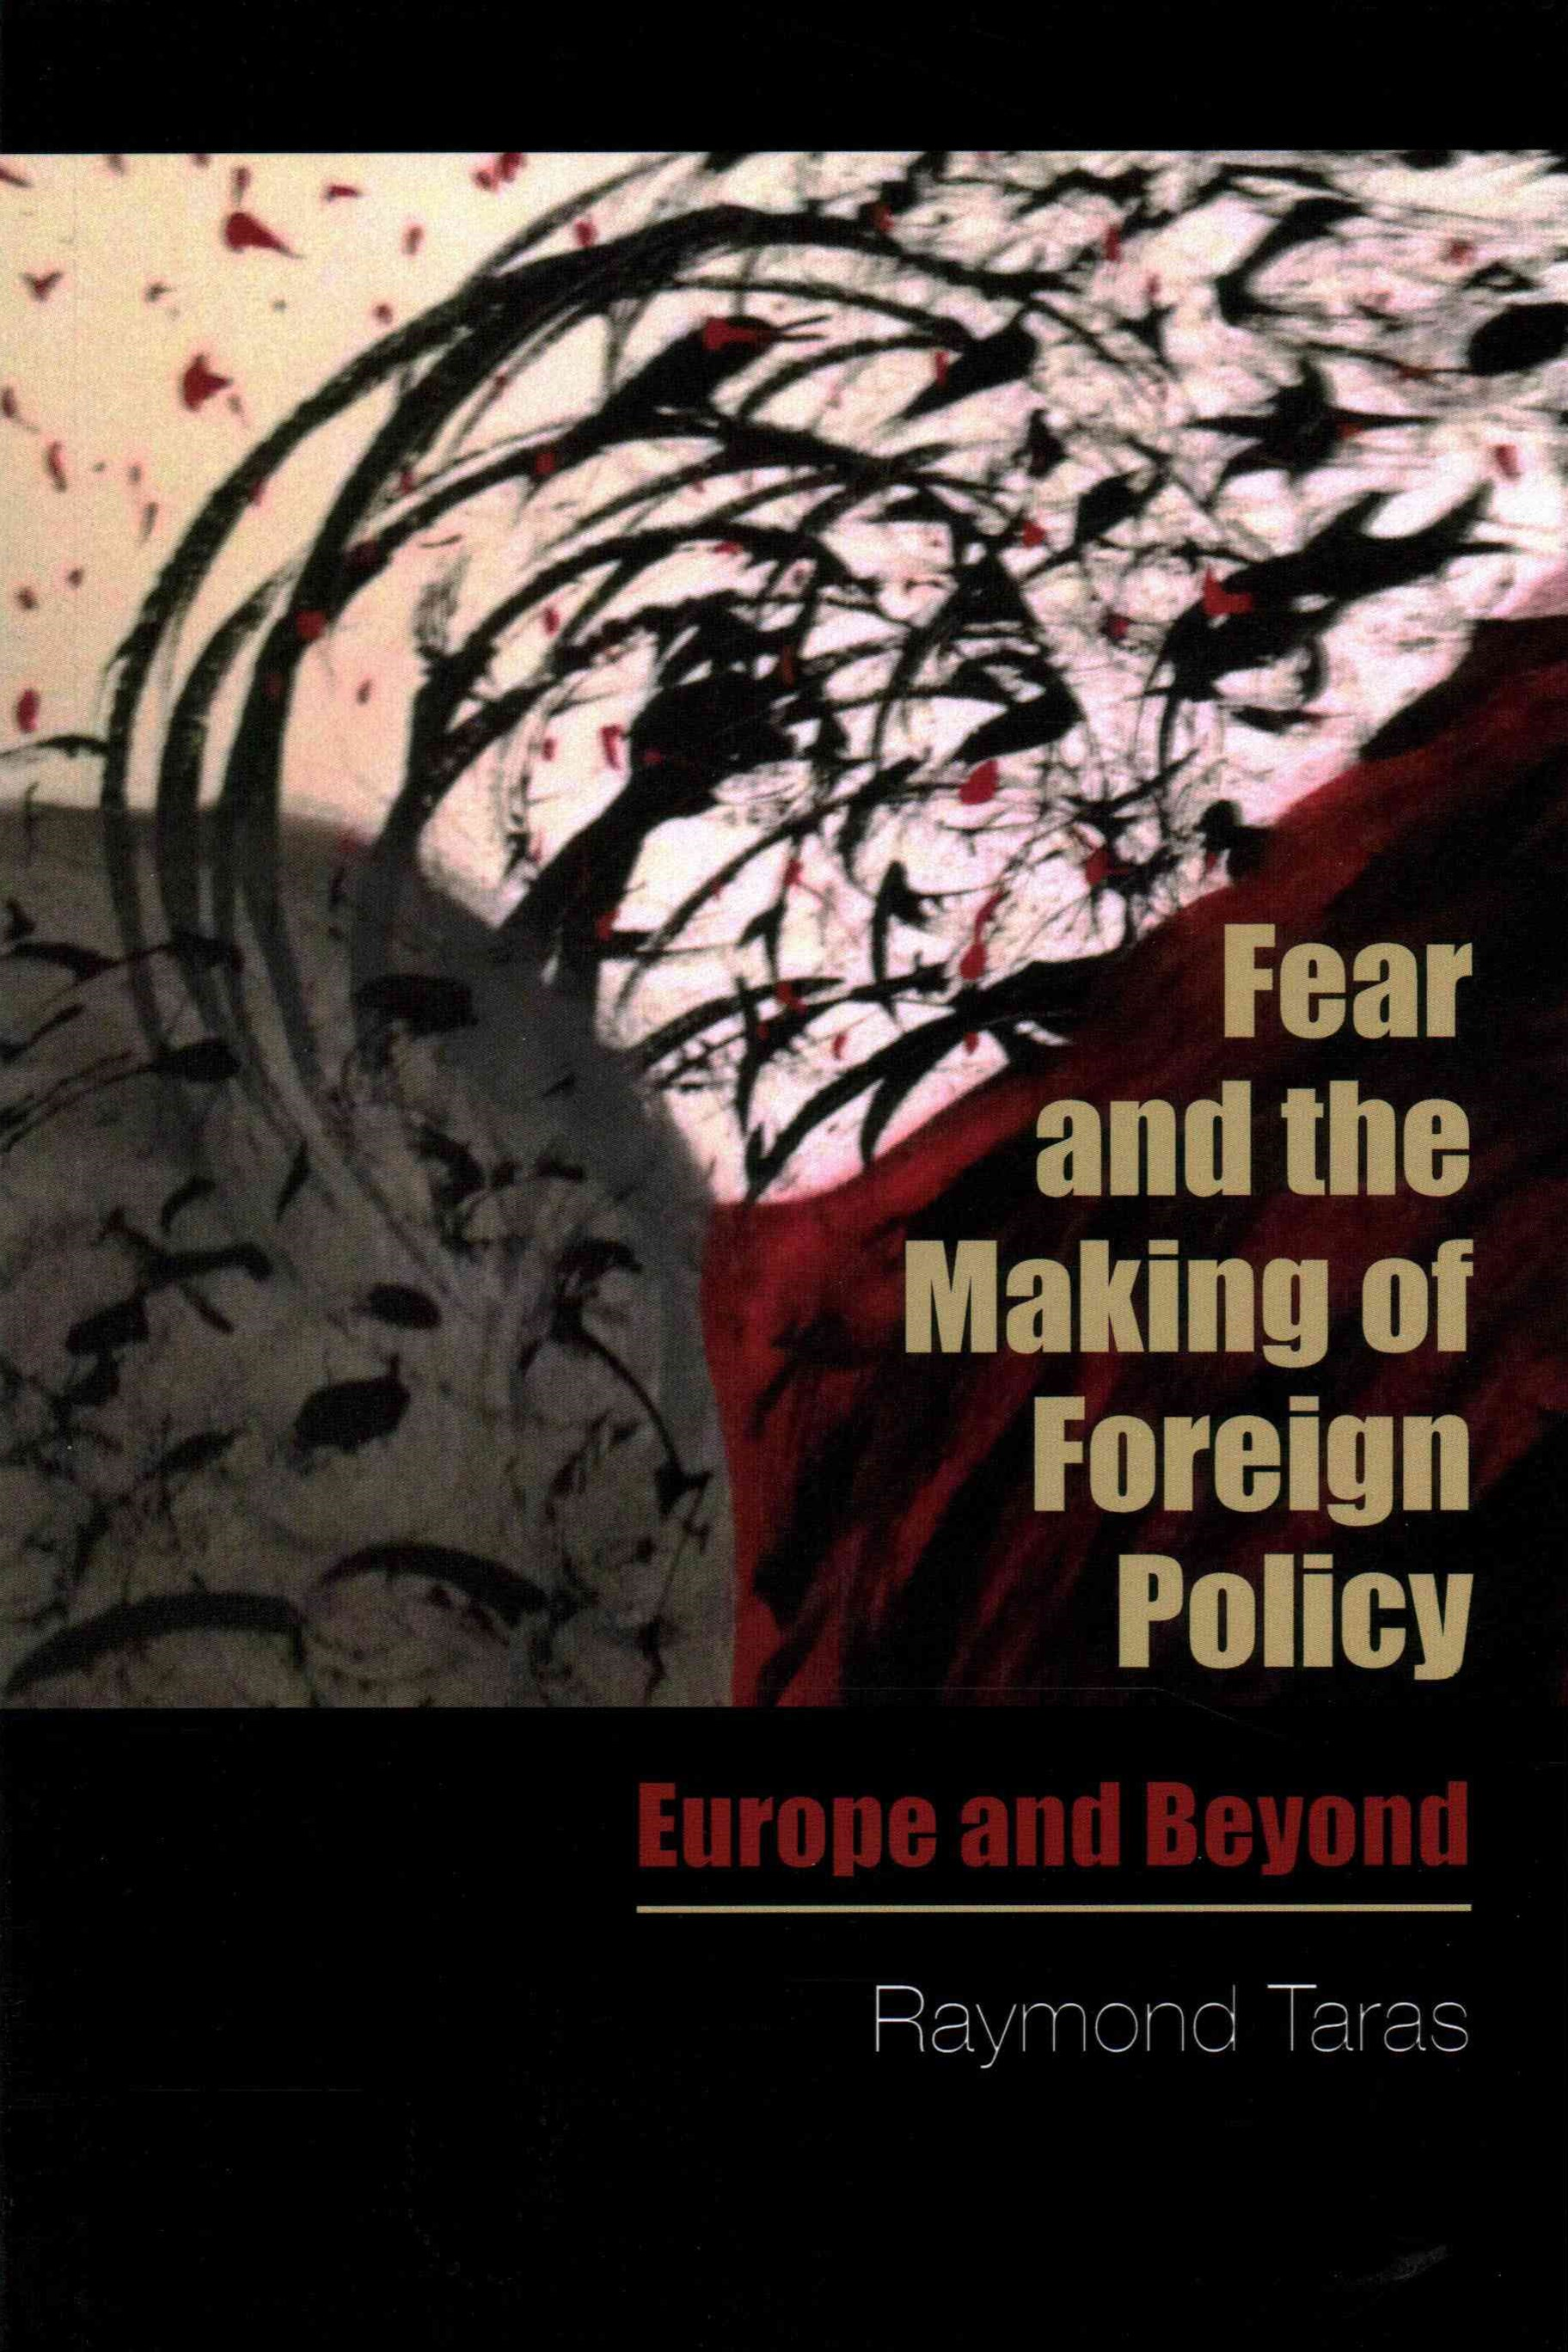 Fear and the Making of Foreign Policy